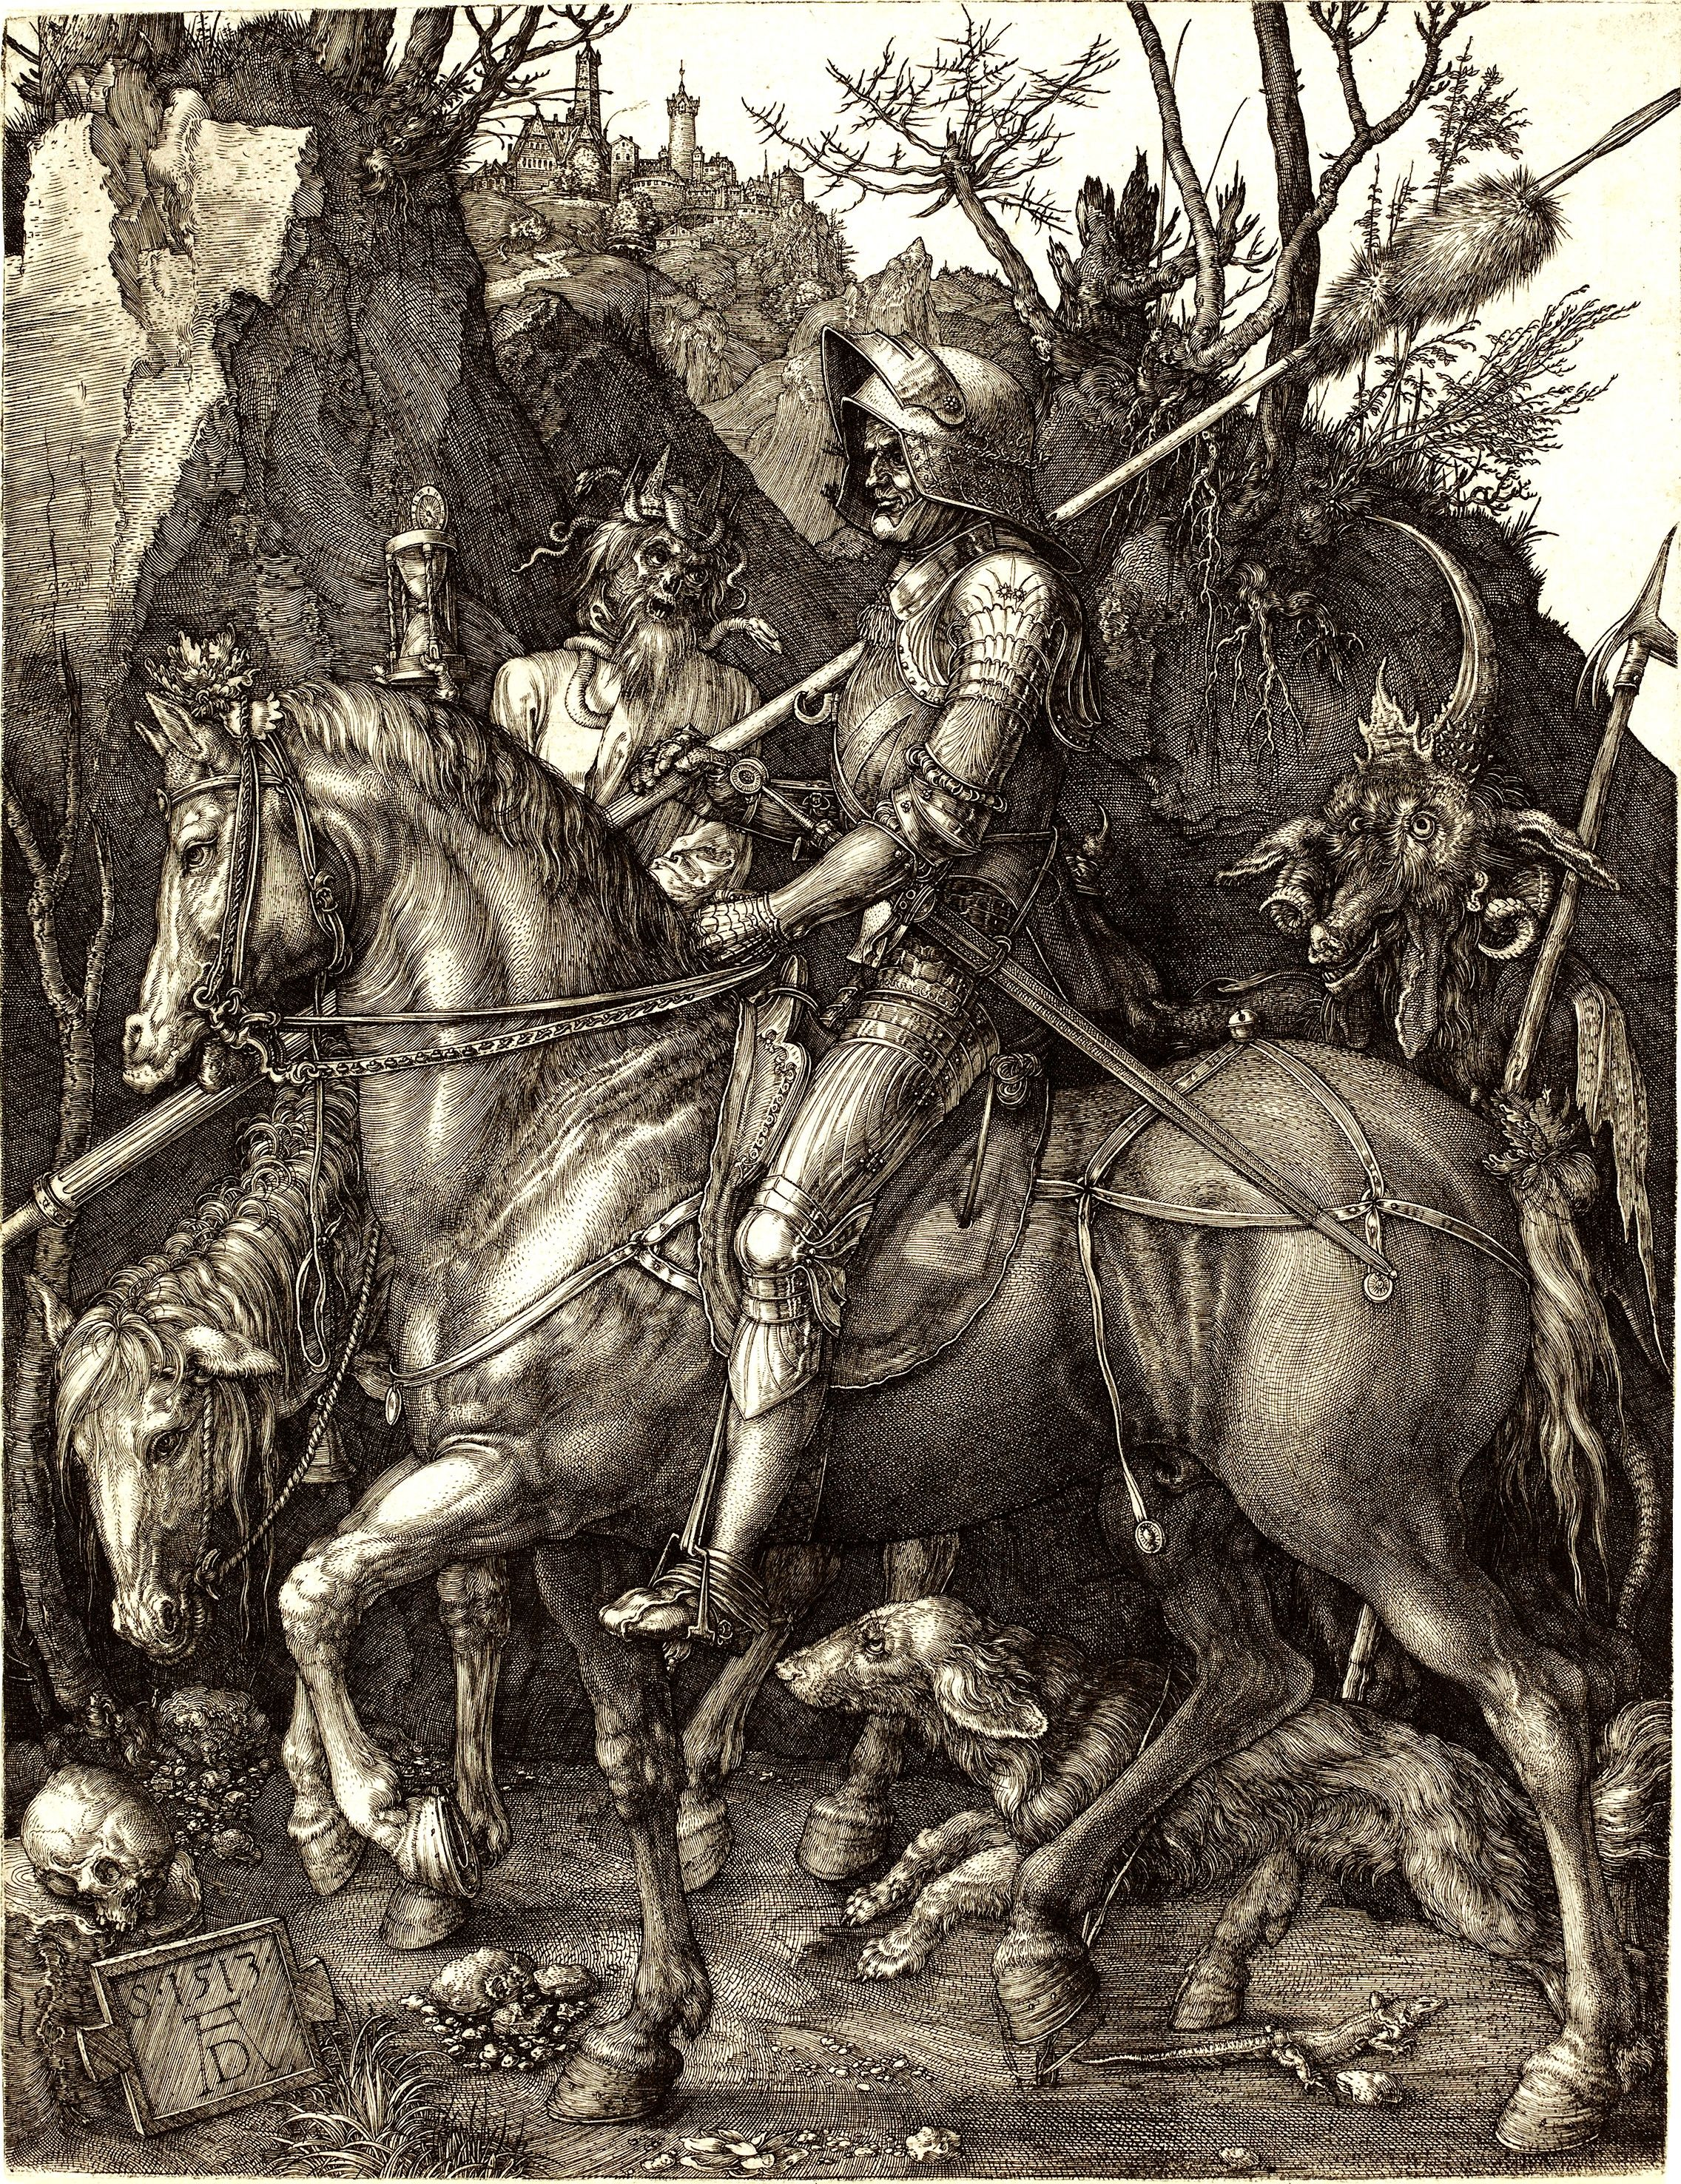 lbrecht durer knight death and the devil for sale - Google Search ...